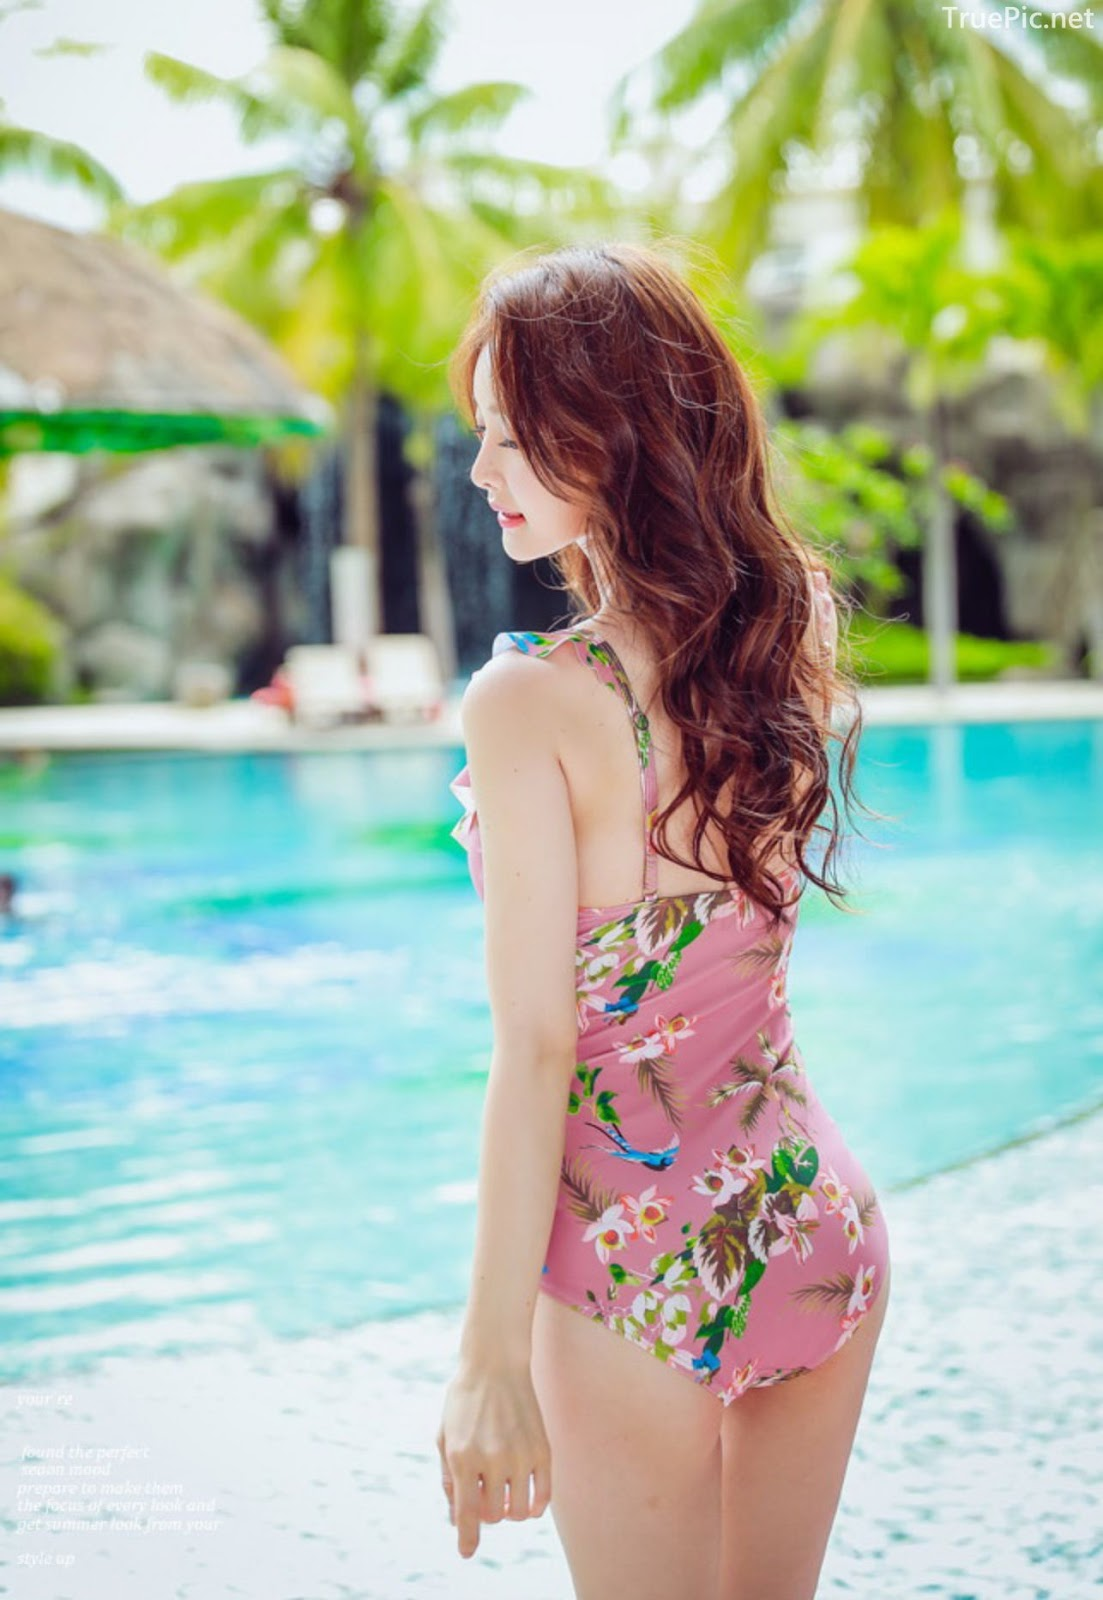 Korean lingerie queen model - Kim Hee Jeong - Floral Pink Swimsuit - Picture 8